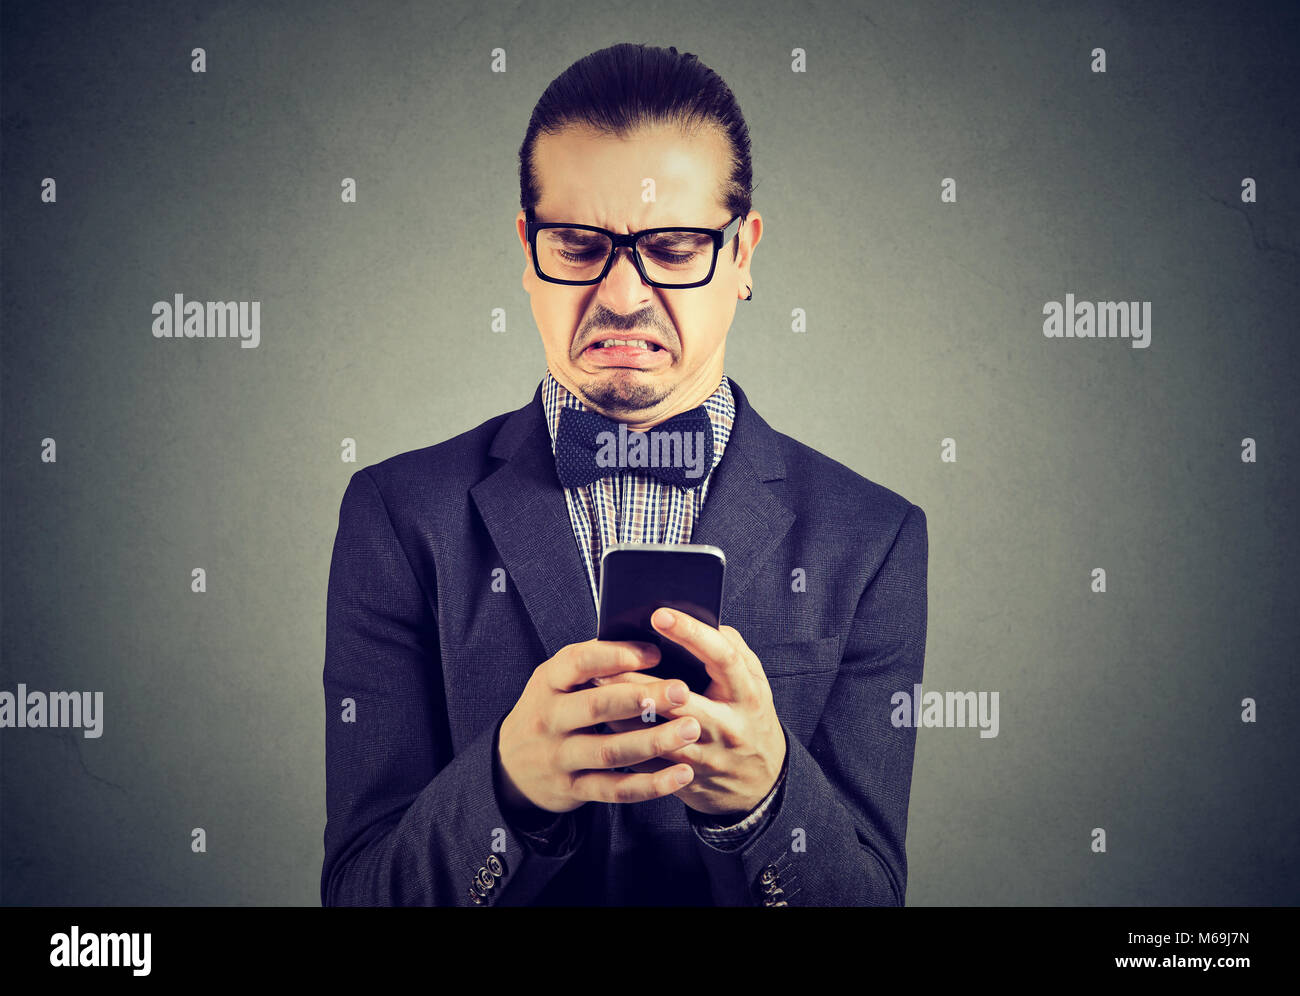 Young formal man in glasses and suit surfing smartphone with feeling of disgust being offended. - Stock Image